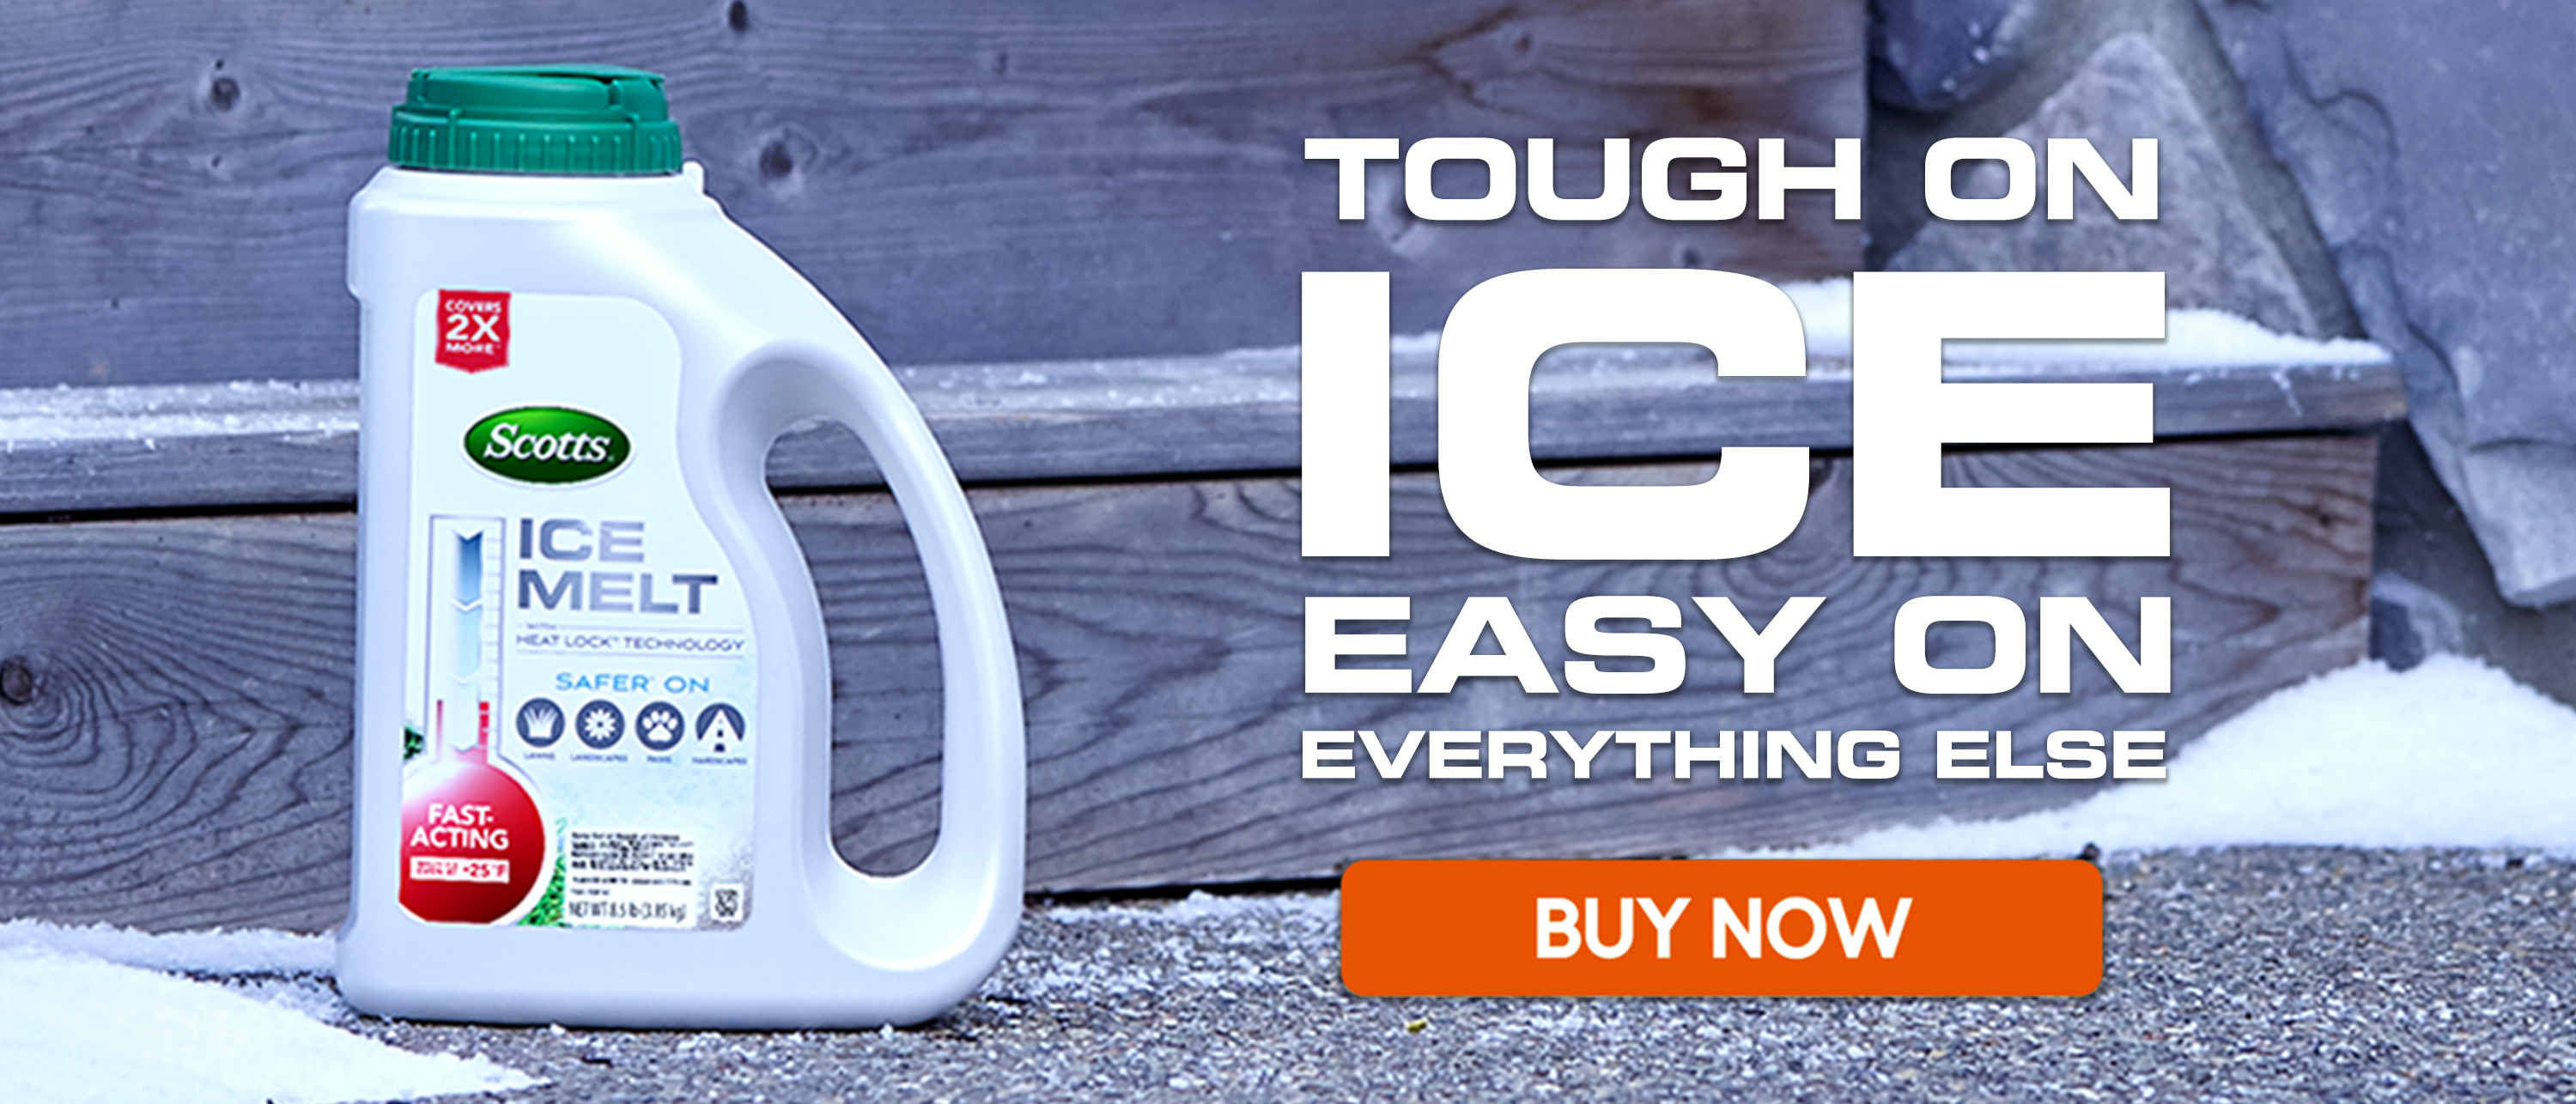 Tough on Ice, Easy on Everything Else